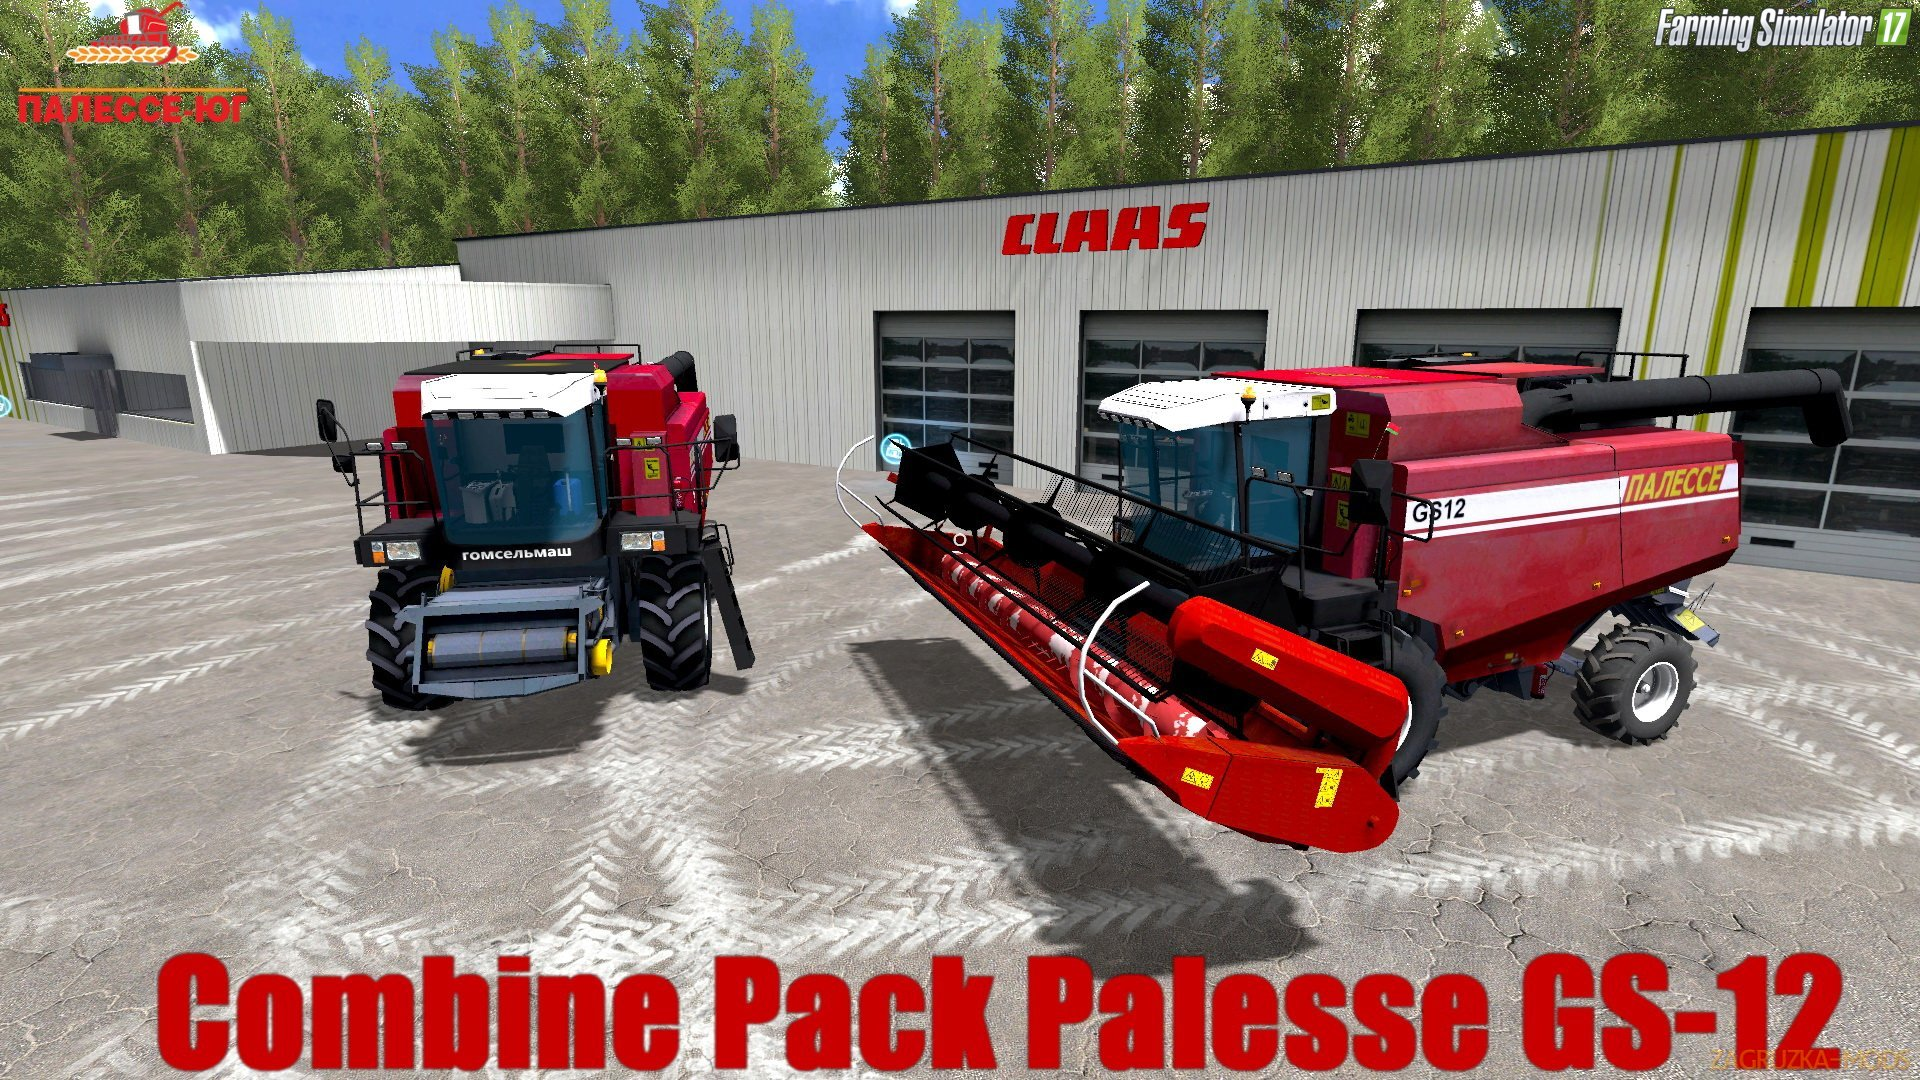 Palesse GS-12 v1.0 by Demoon for FS 17